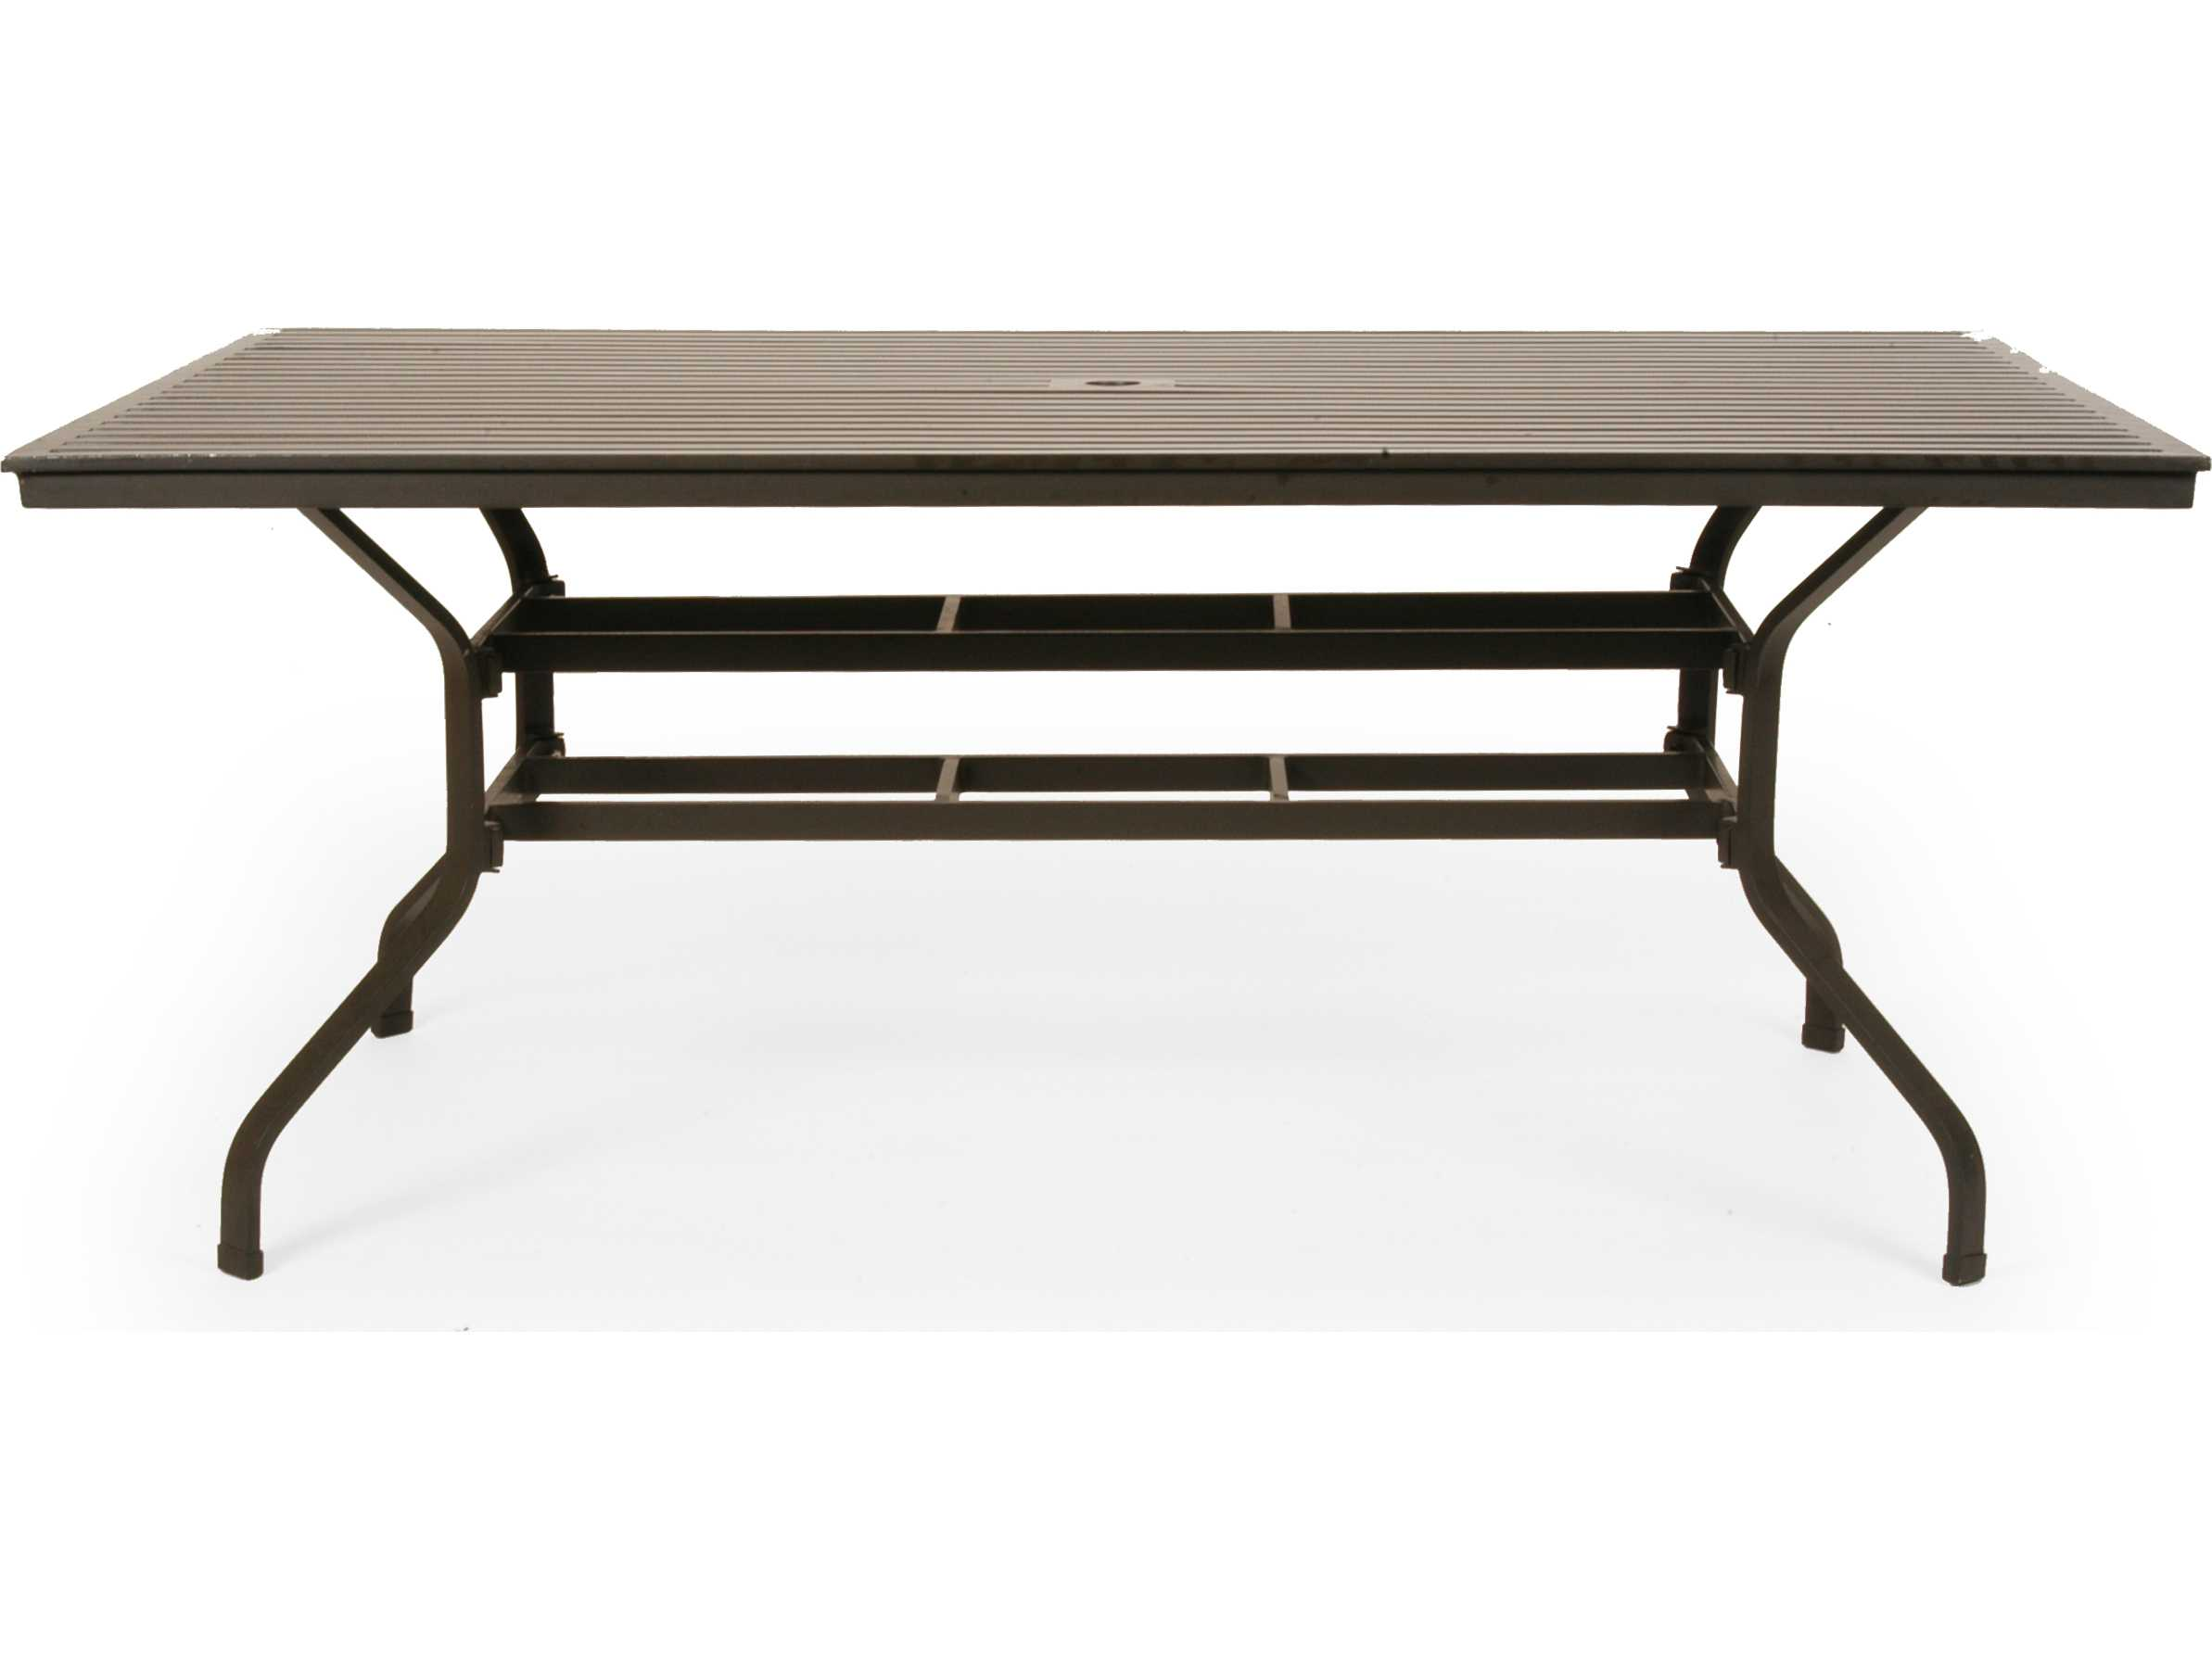 96 x 42 rectangular metal dining table with umbrella hole 710c 96